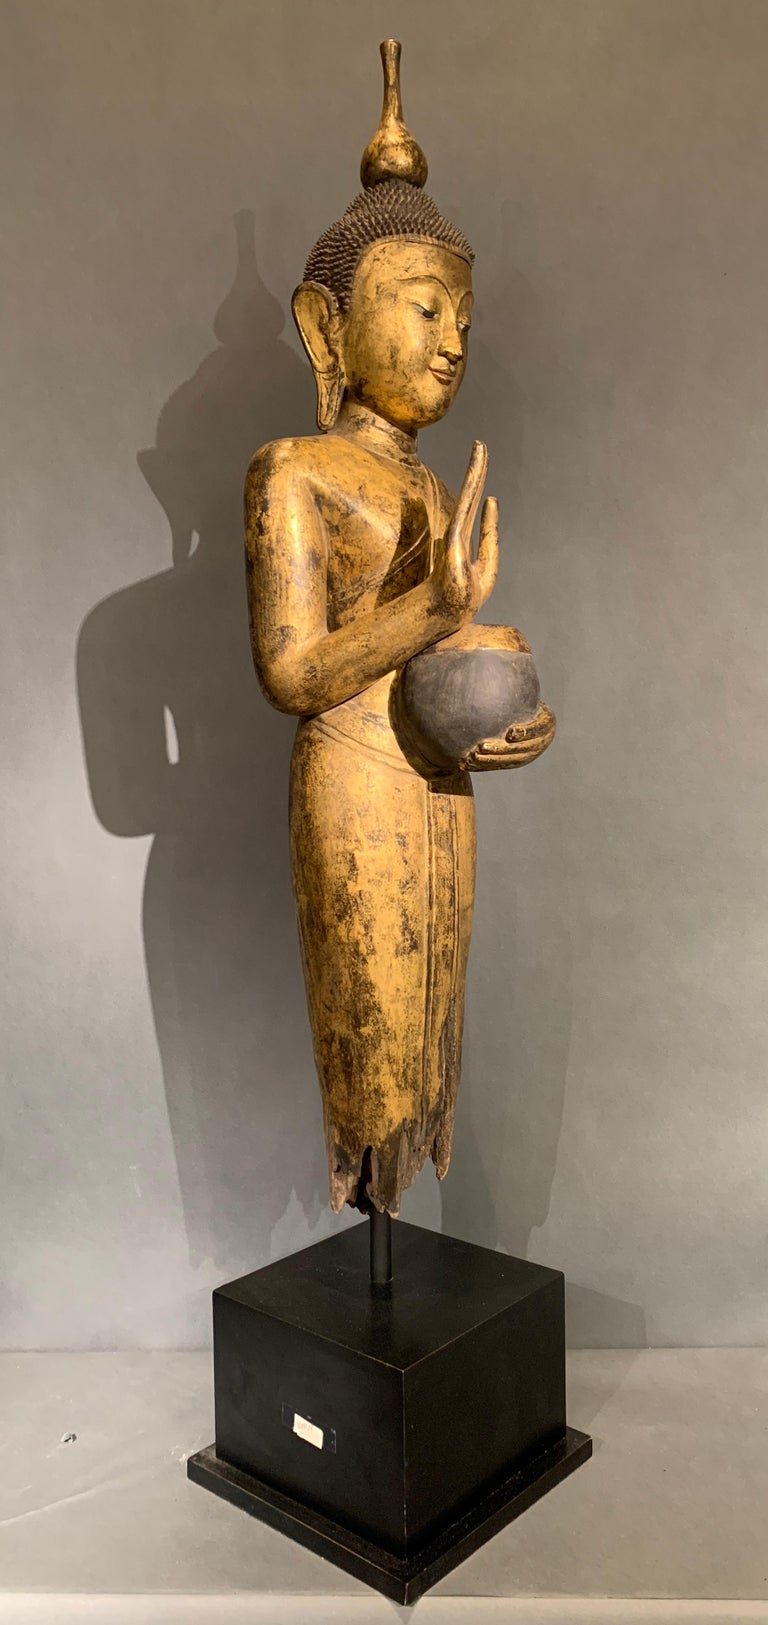 A powerful Shan Burmese standing Buddha of carved and gilt teak wood with shell inlaid eyes, early 20th century.  The Buddha stands upright, dressed in a form fitting monastic robe tied at the waist, one shoulder exposed, with a sash thrown across